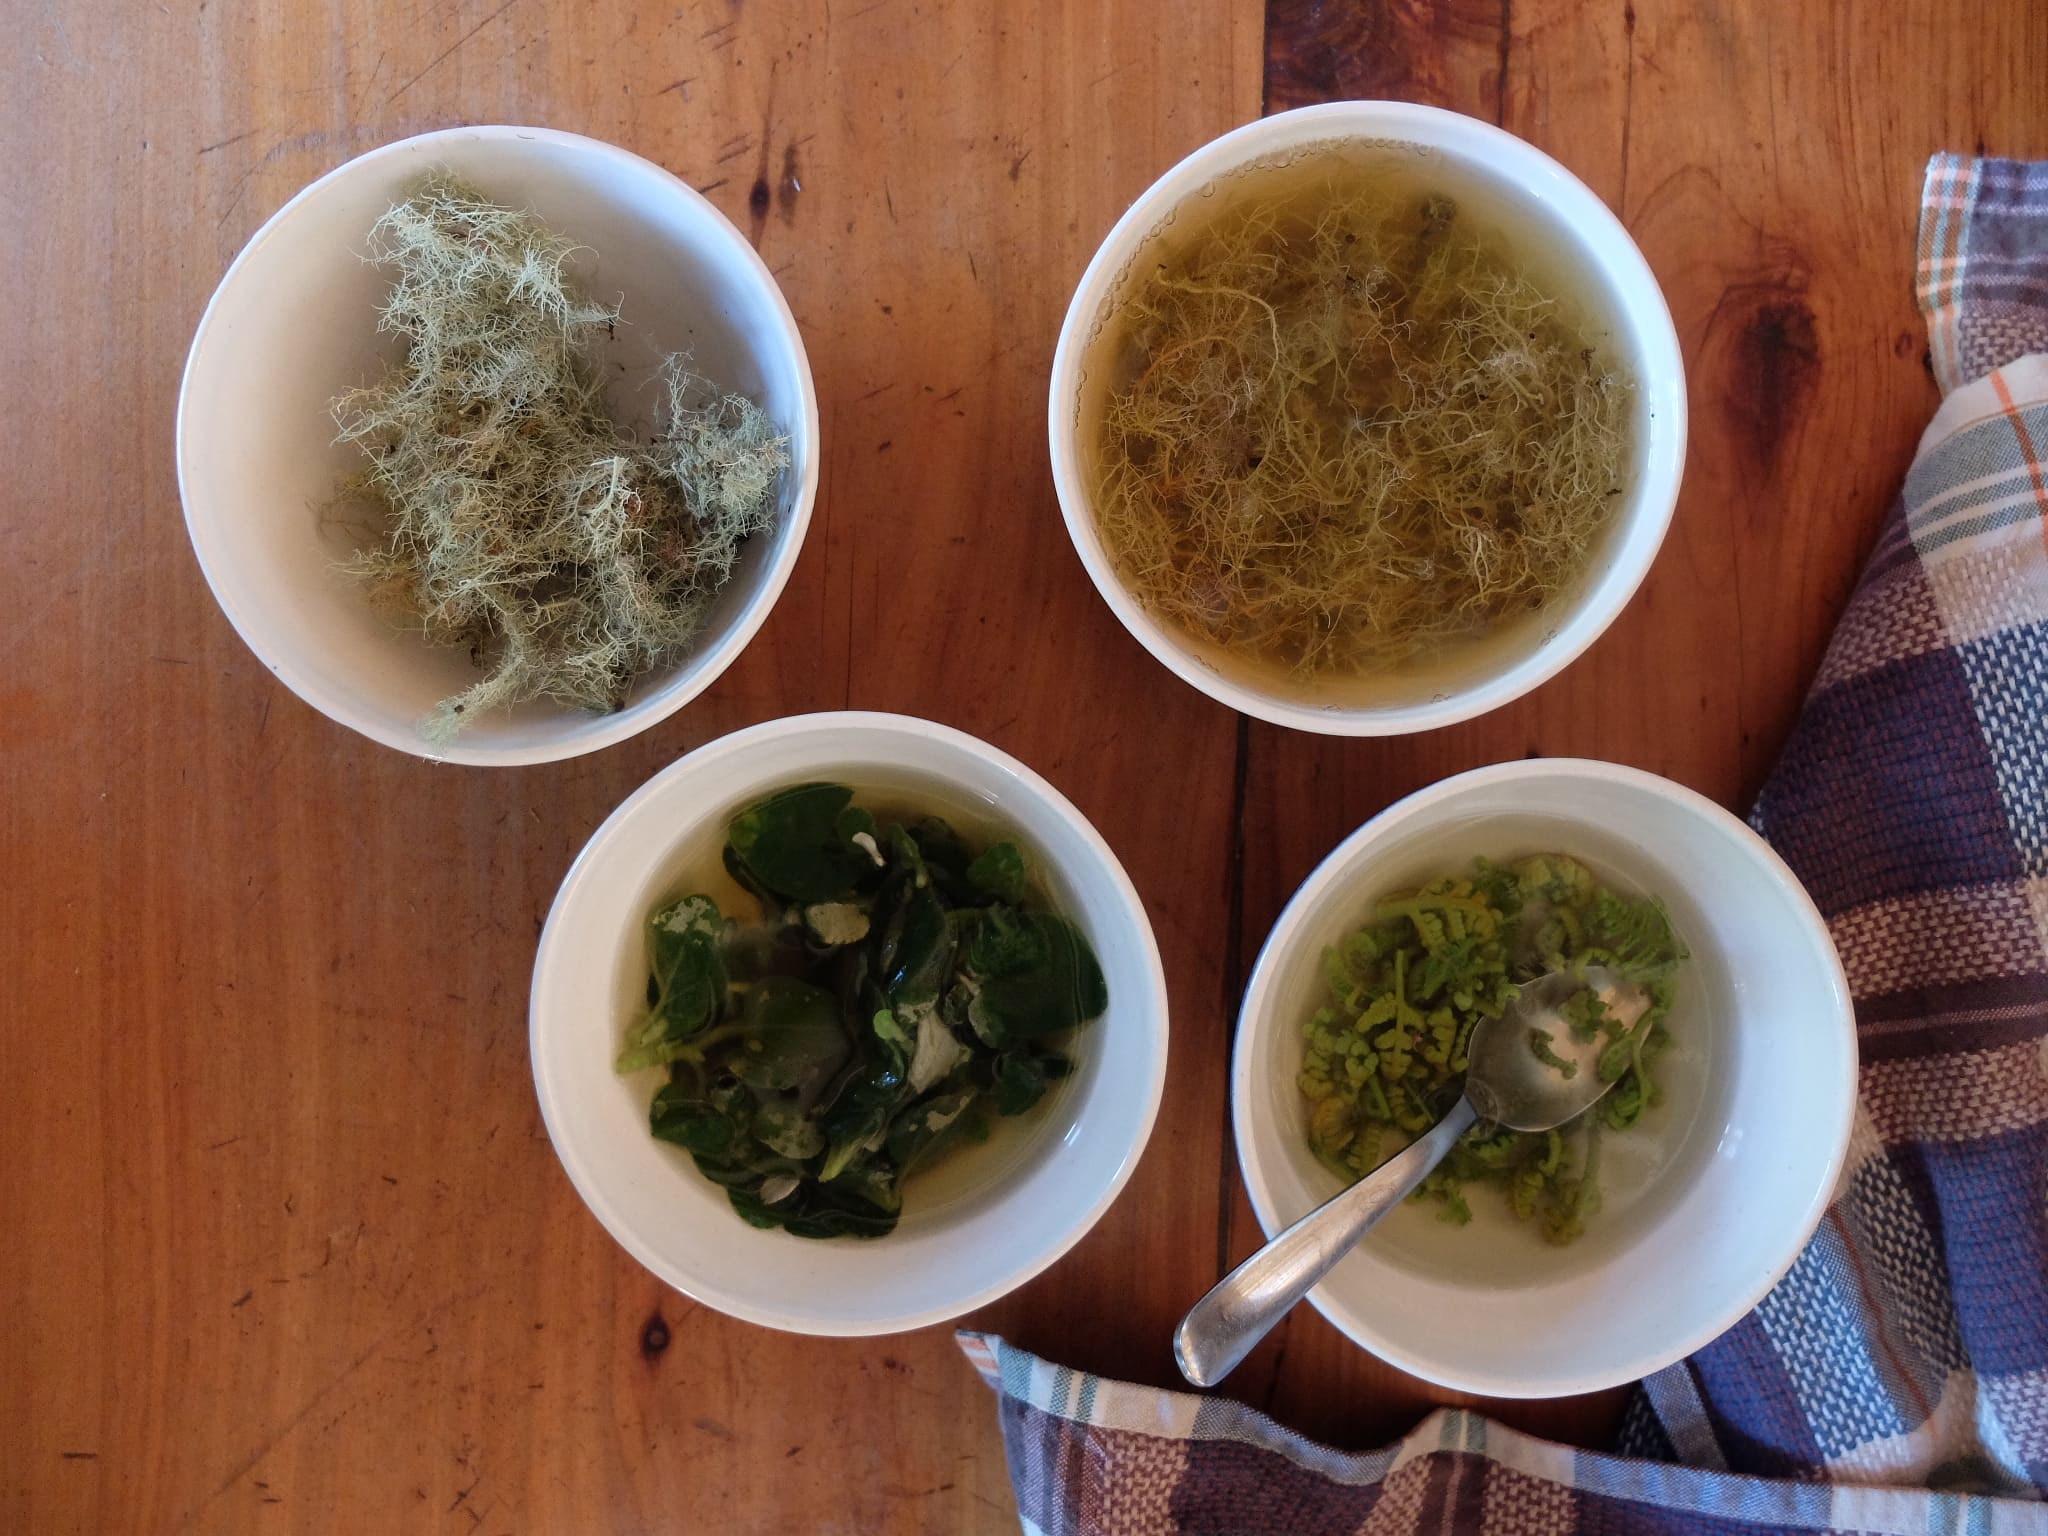 Natural Dye tester pots containing ingredients sourced from the forest